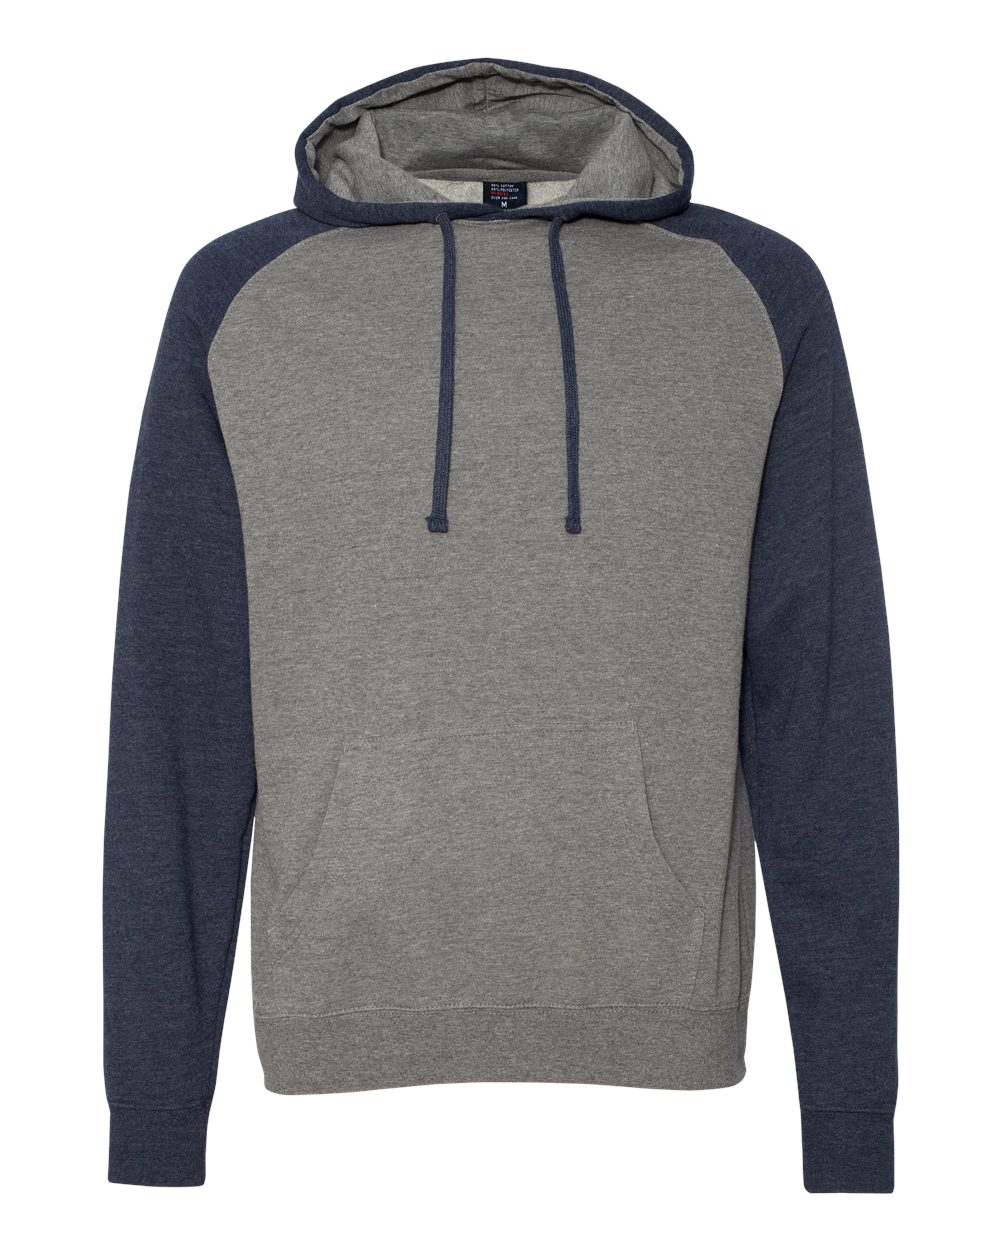 Independent-Trading-Co-Mens-Raglan-Hooded-Pullover-Sweatshirt-IND40RP-up-to-3XL miniature 27